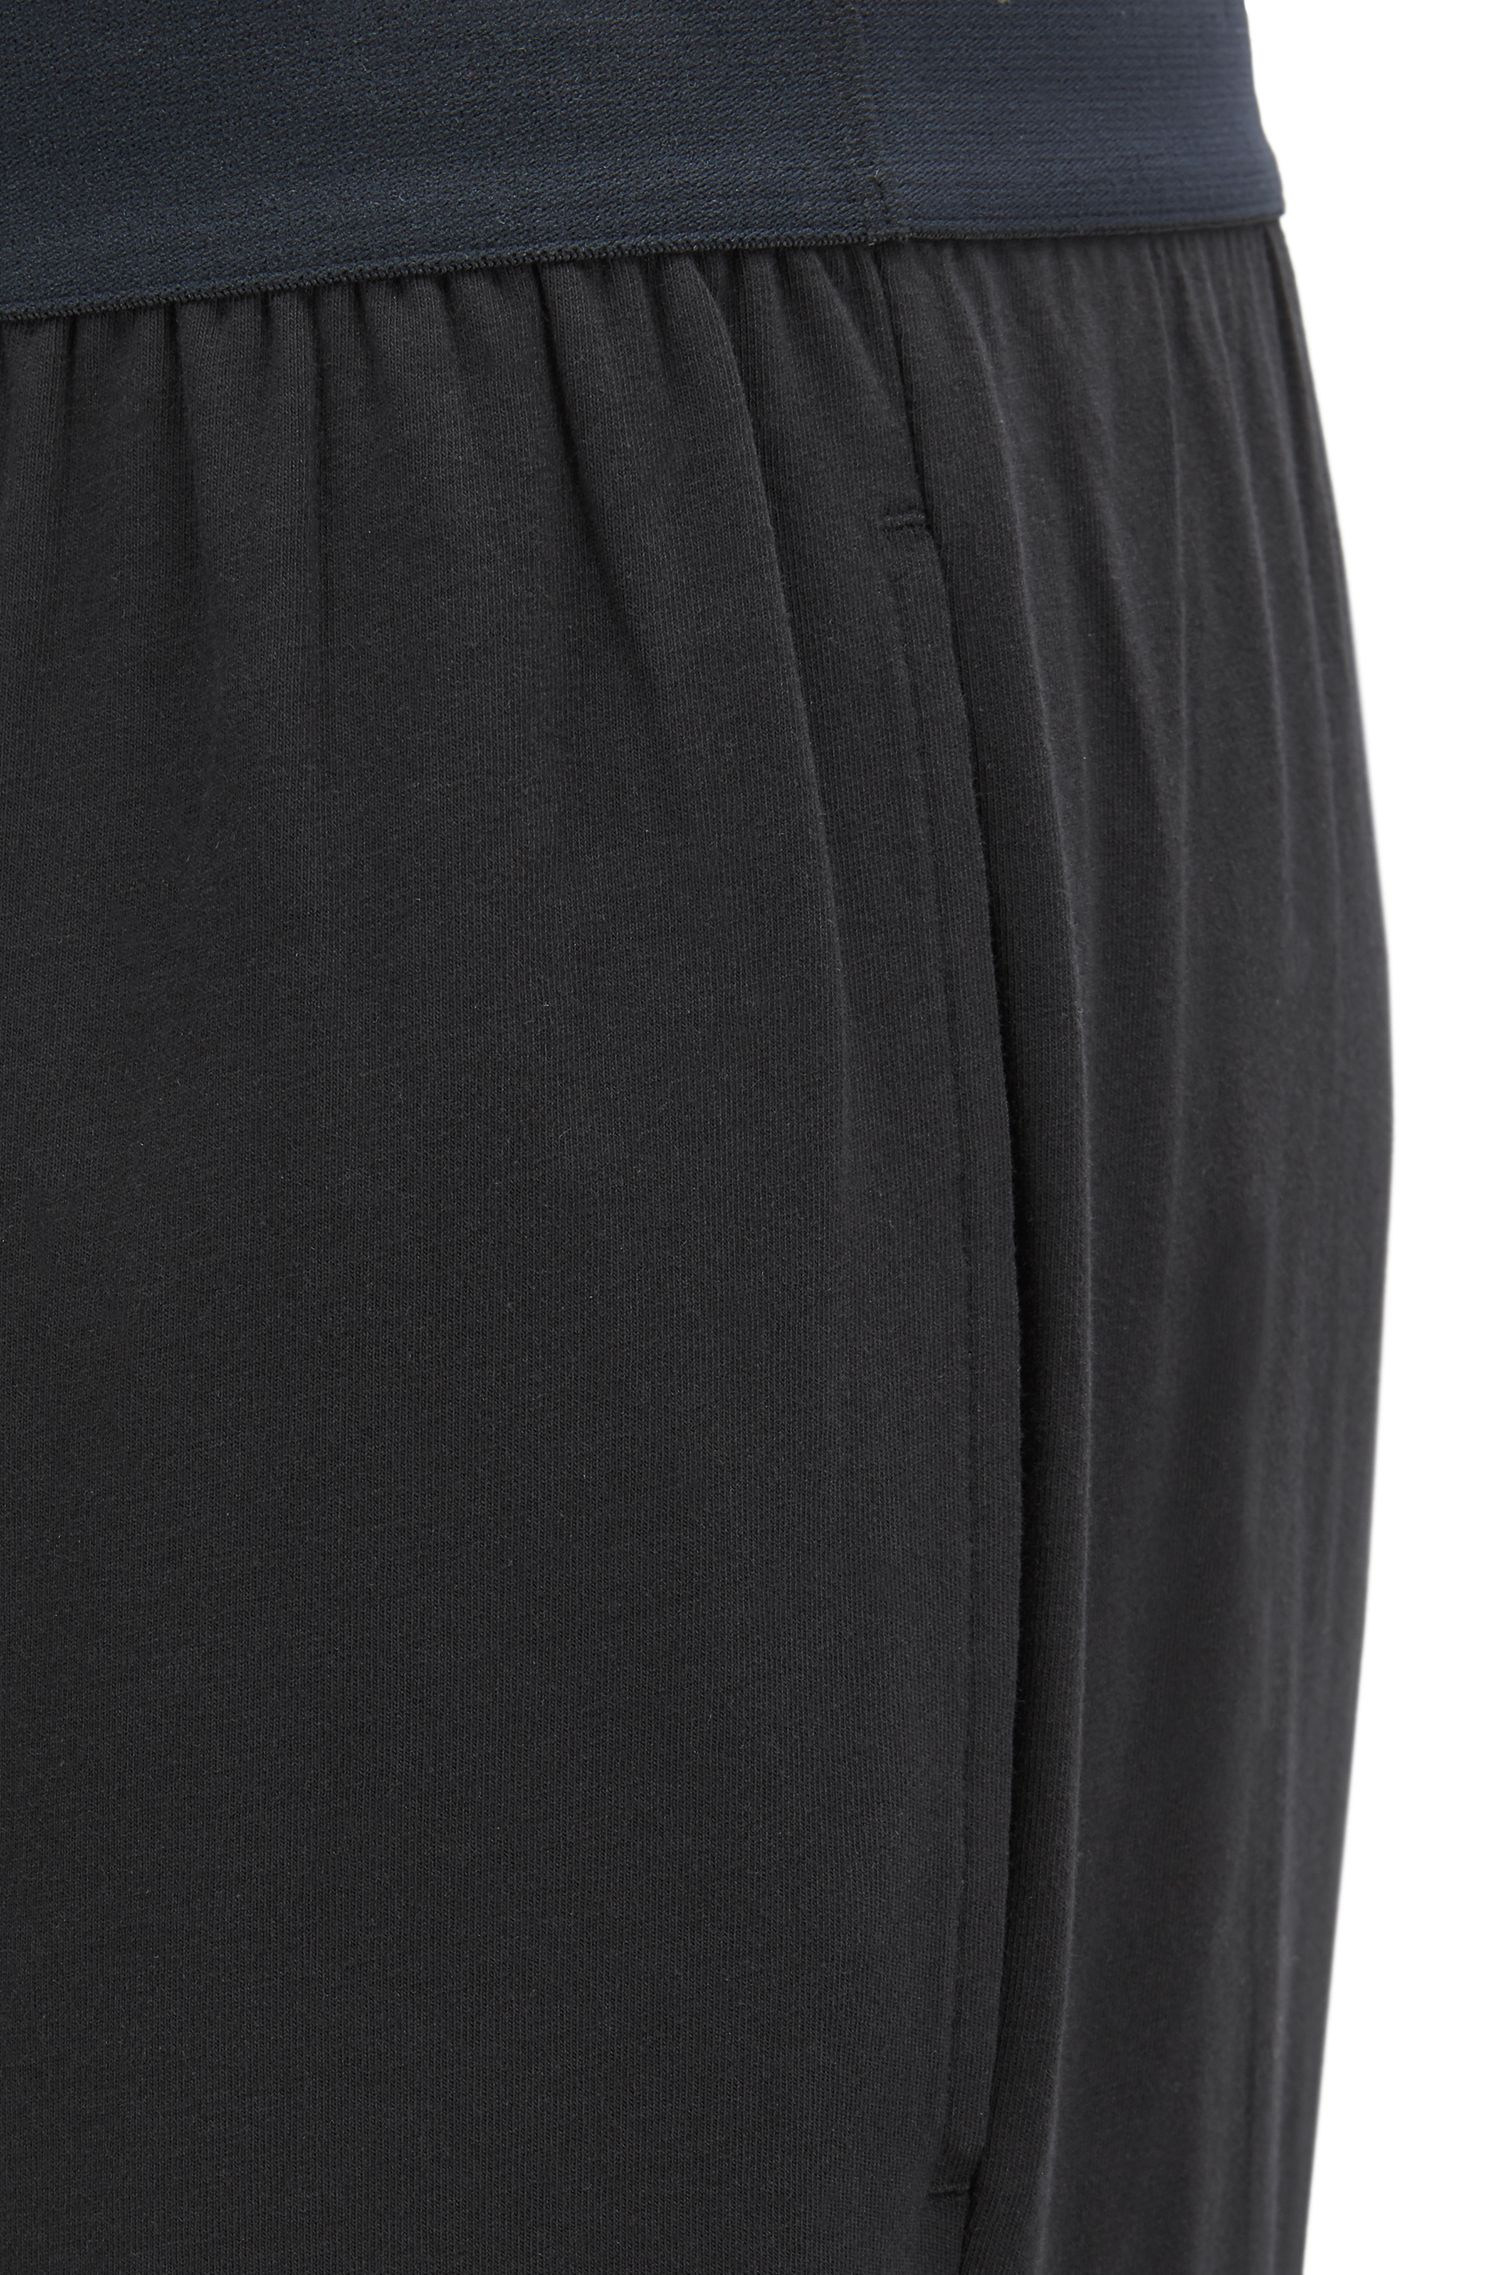 Pyjama trousers in stretch cotton with logo waistband, Black